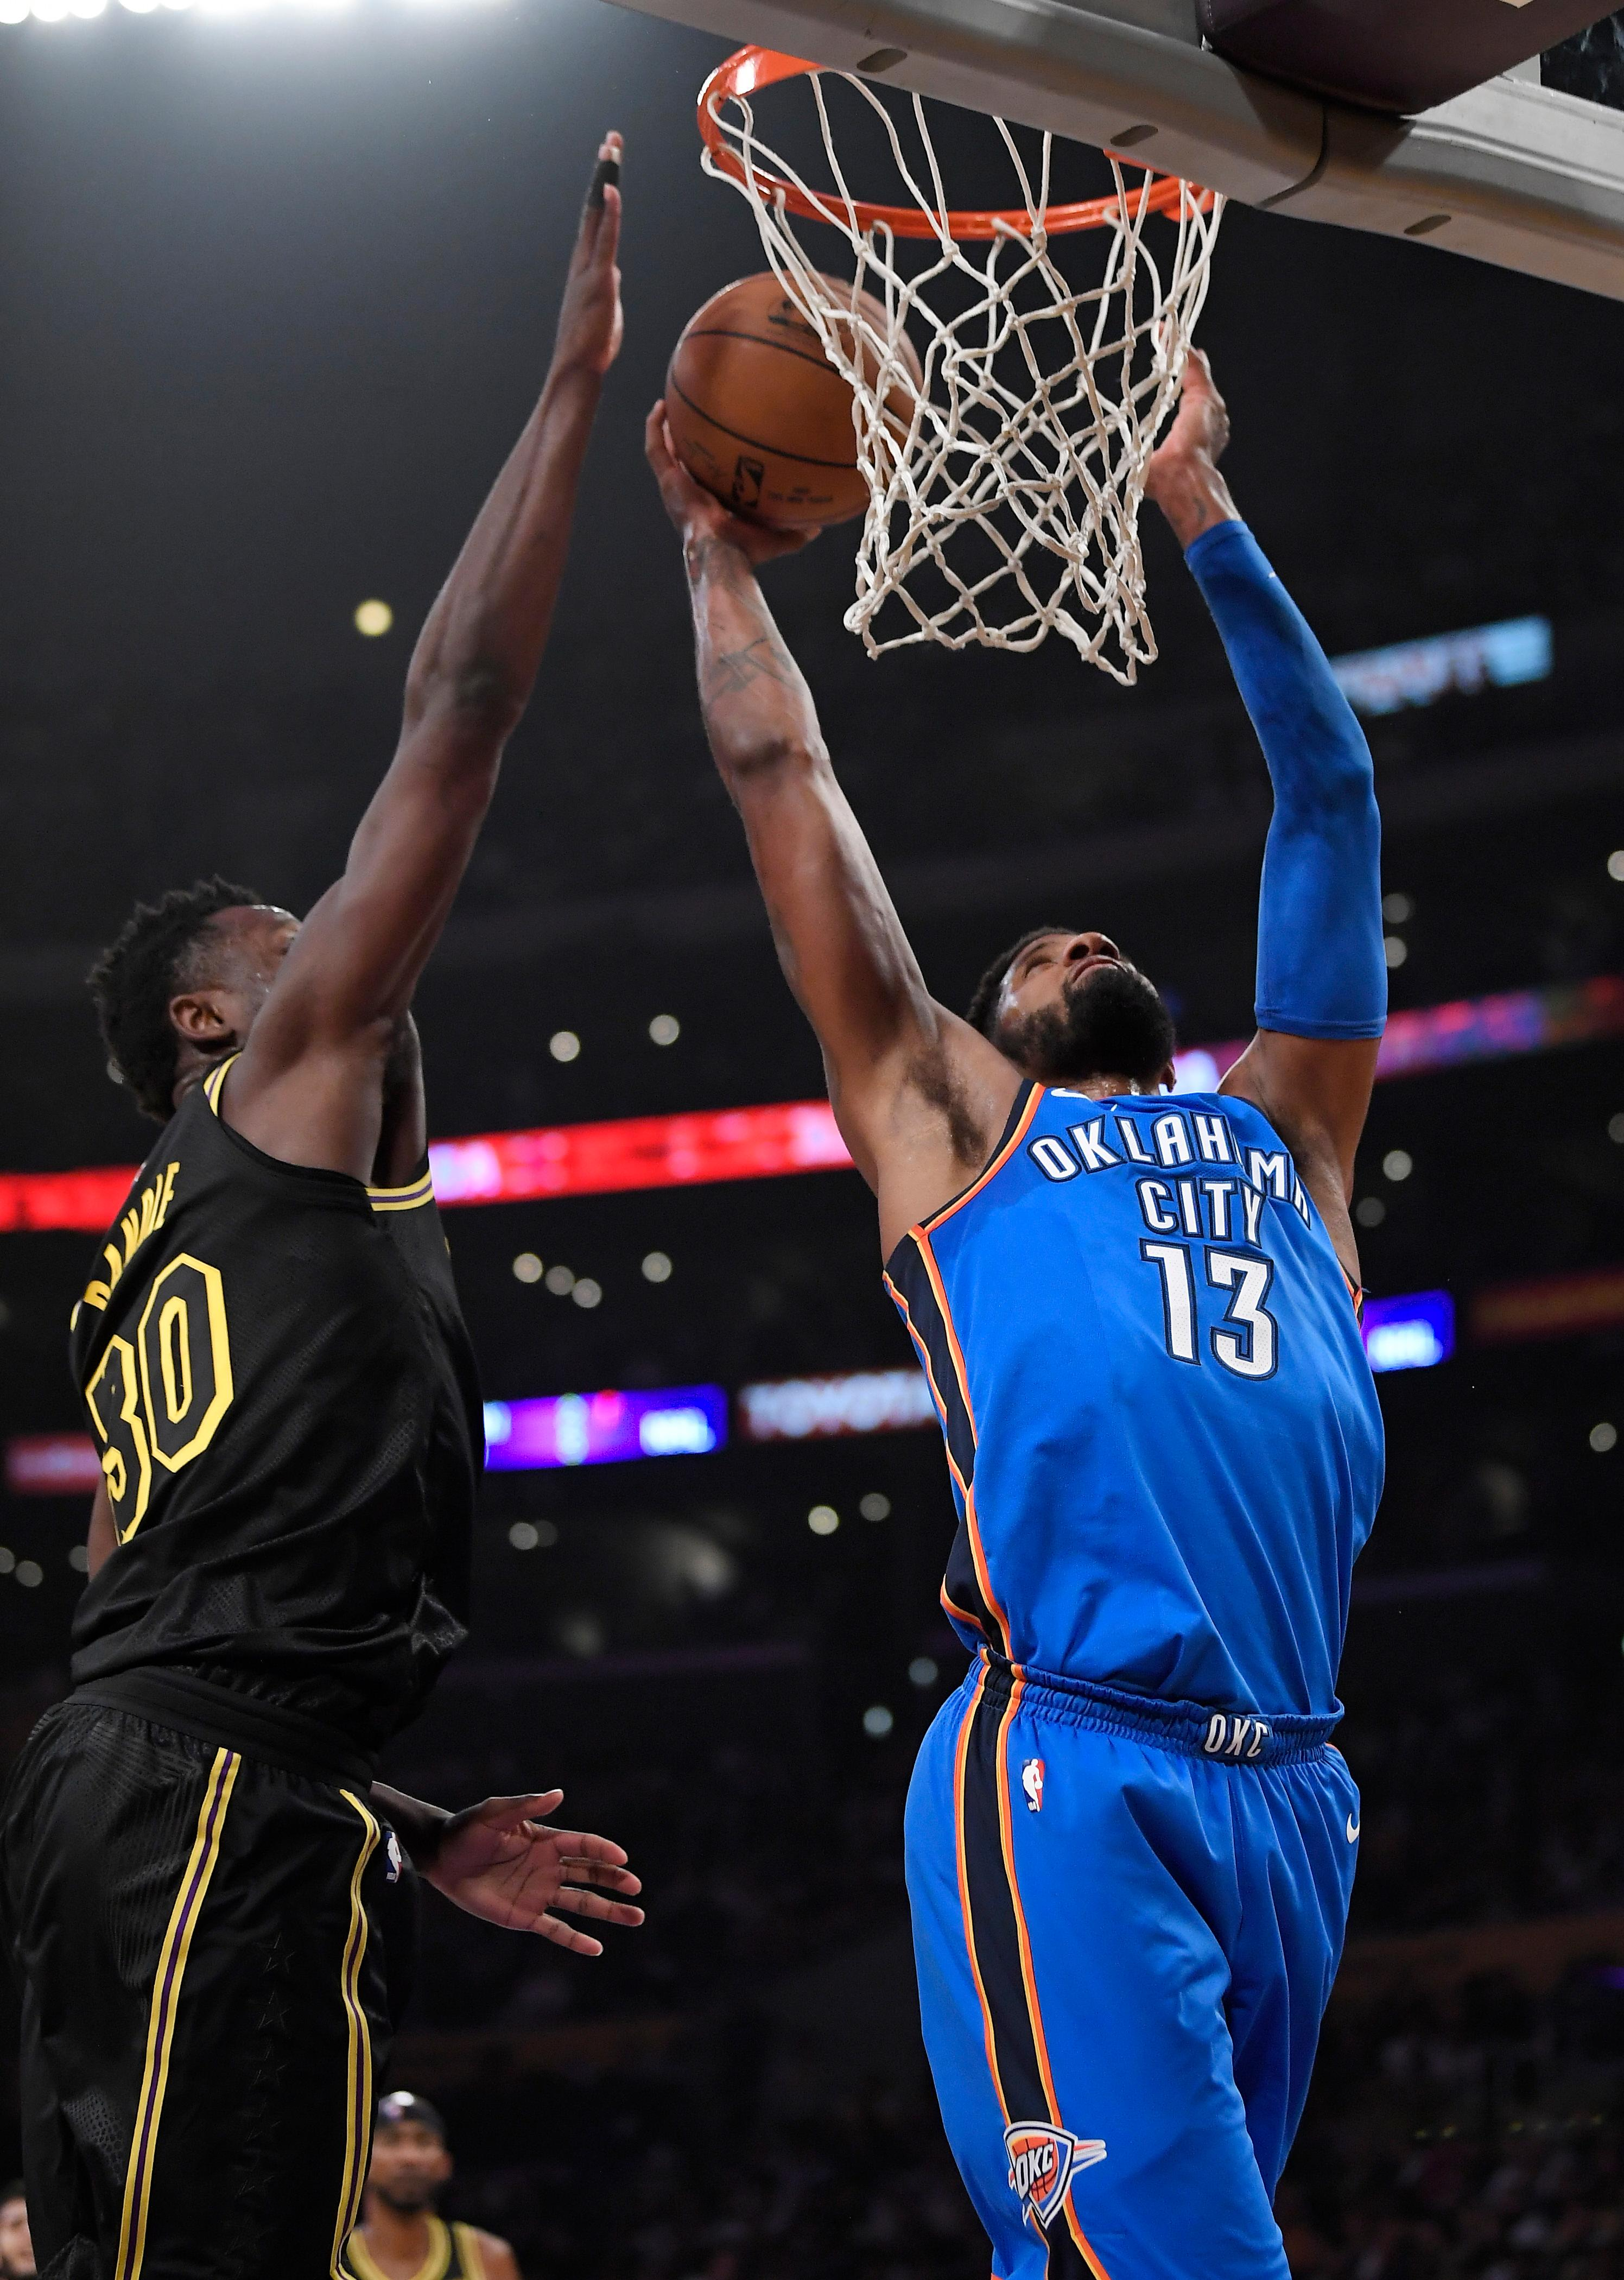 Oklahoma City Thunder forward Paul George, right, shoots as Los Angeles Lakers forward Julius Randle defends during the first half of an NBA basketball game, Thursday, Feb. 8, 2018, in Los Angeles. (AP Photo/Mark J. Terrill)